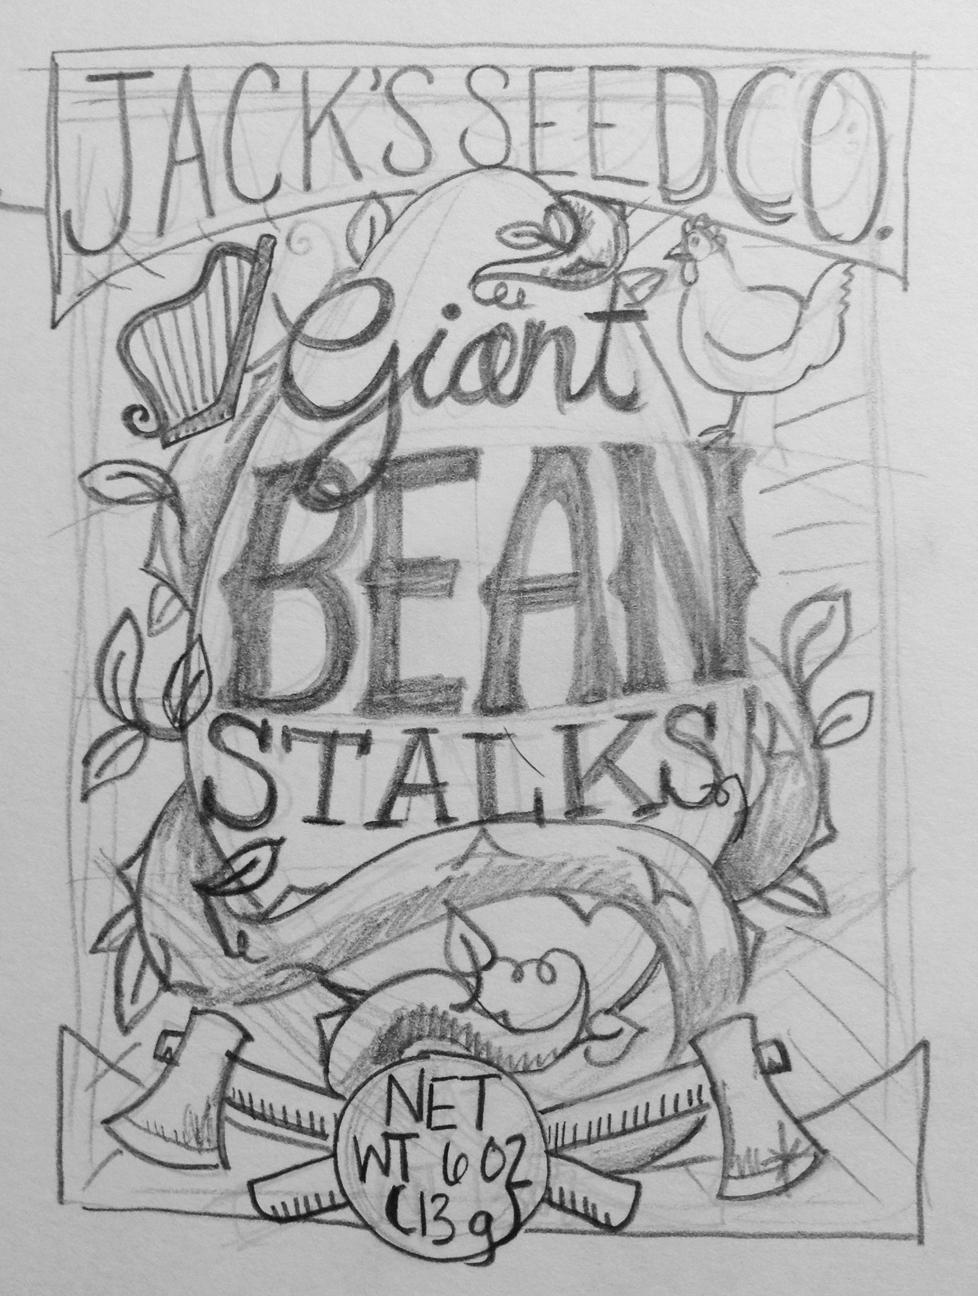 Jack's Seed Co. - image 5 - student project